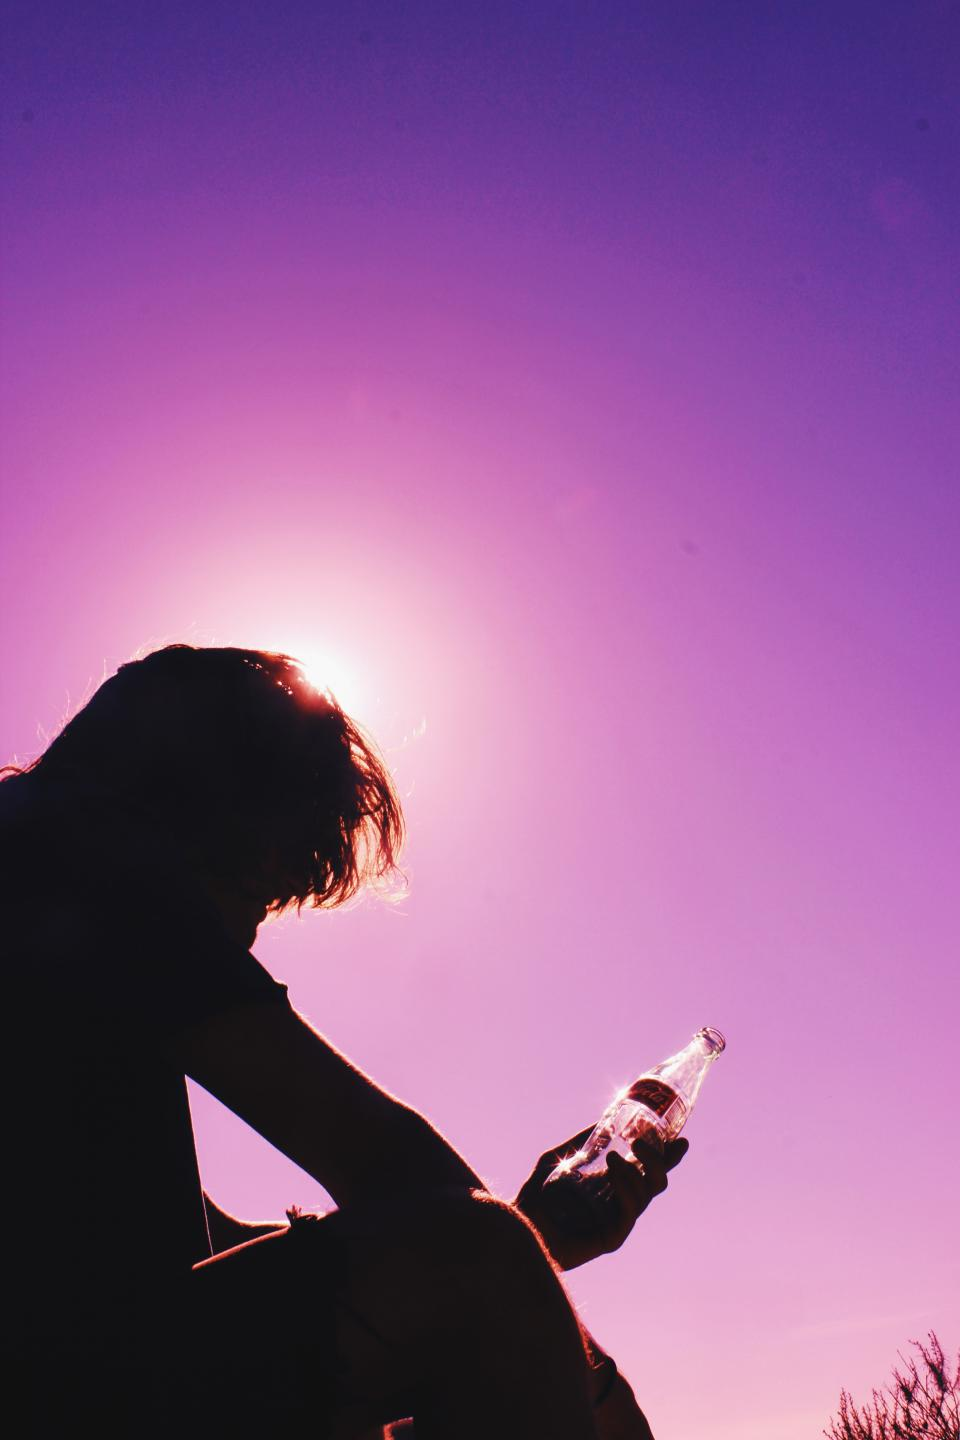 purple pink sky sunset silhouette shadow dusk guy man people glass bottle drink drinks coca cola